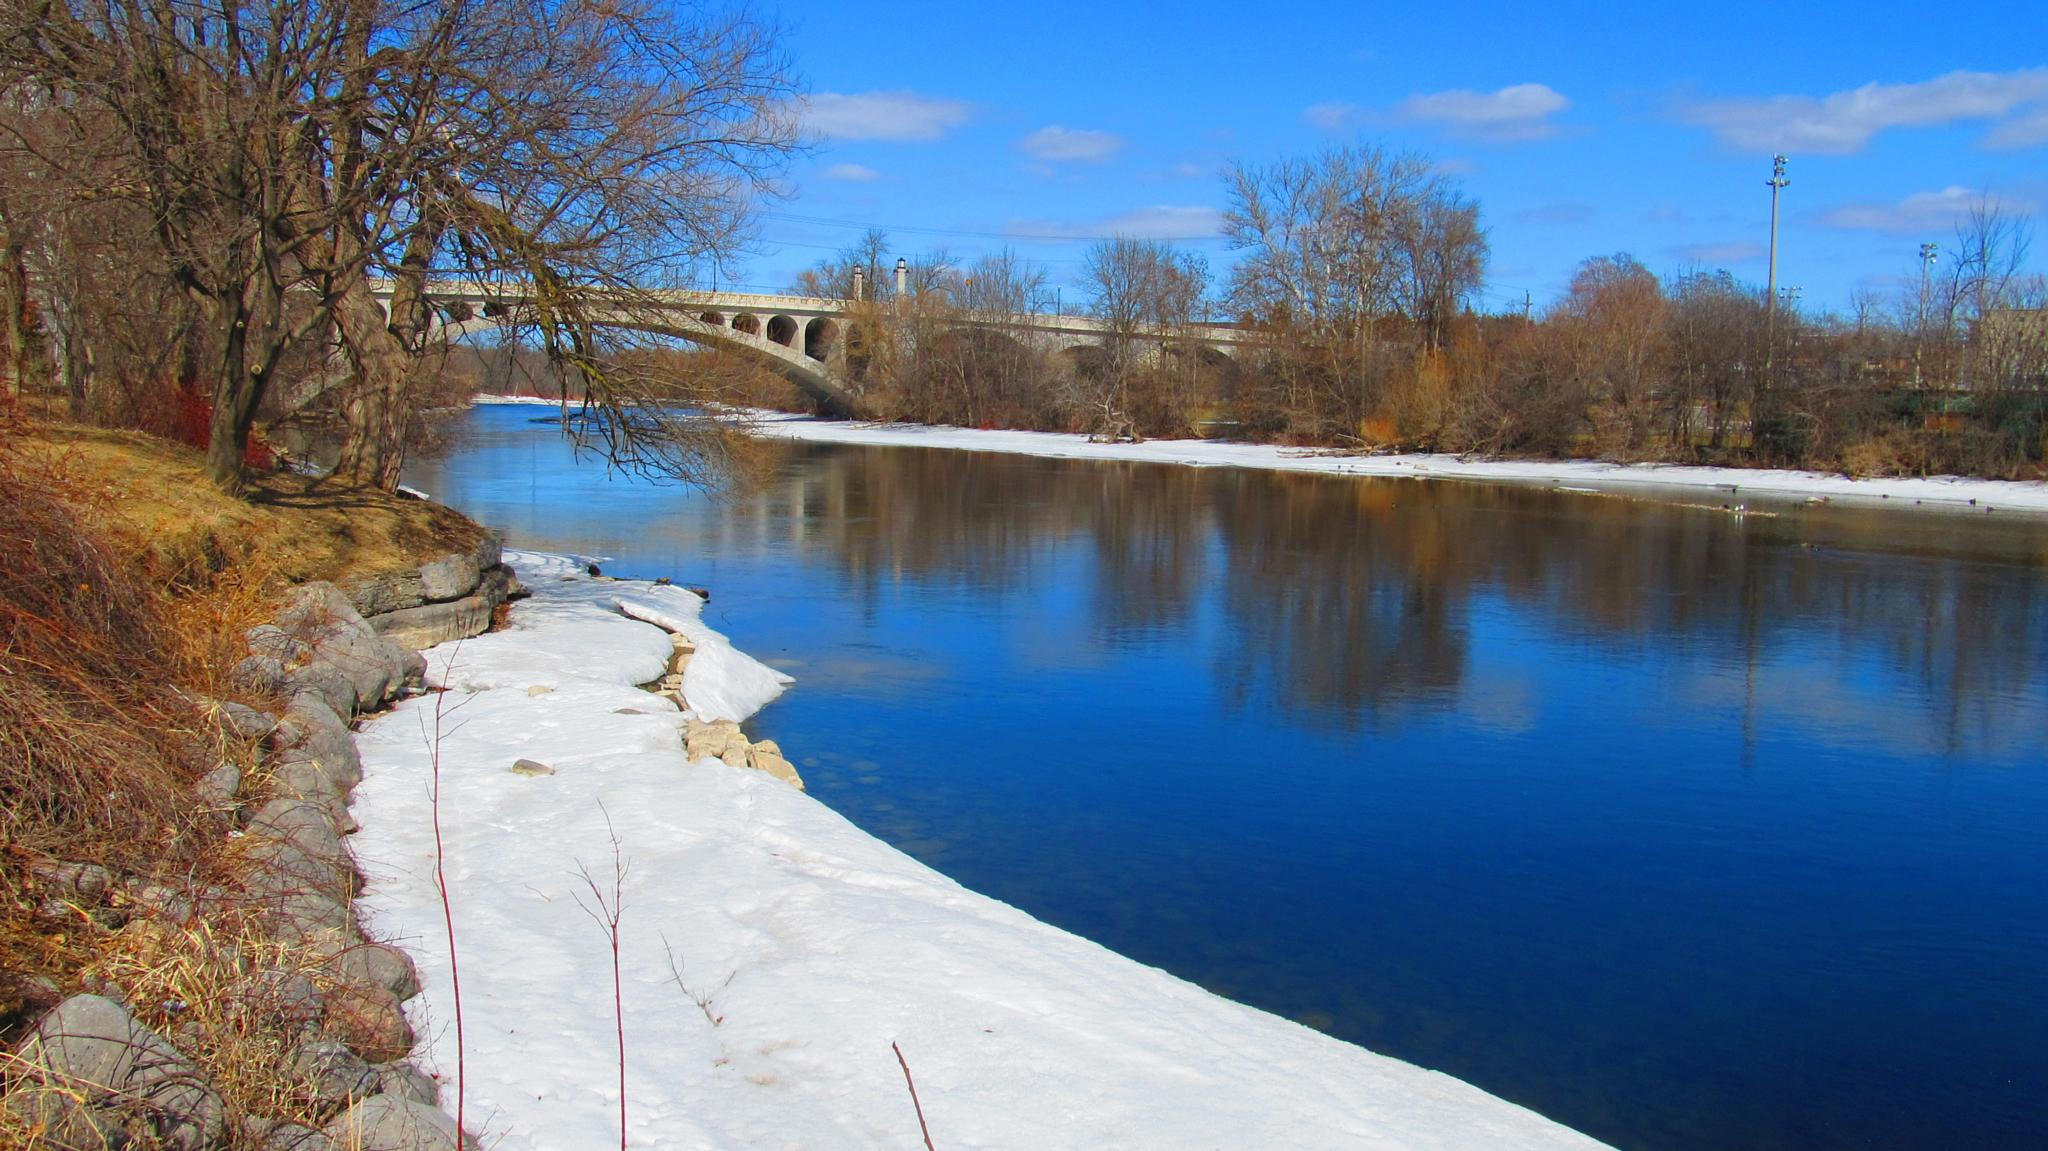 snow banks  by the River by simonp